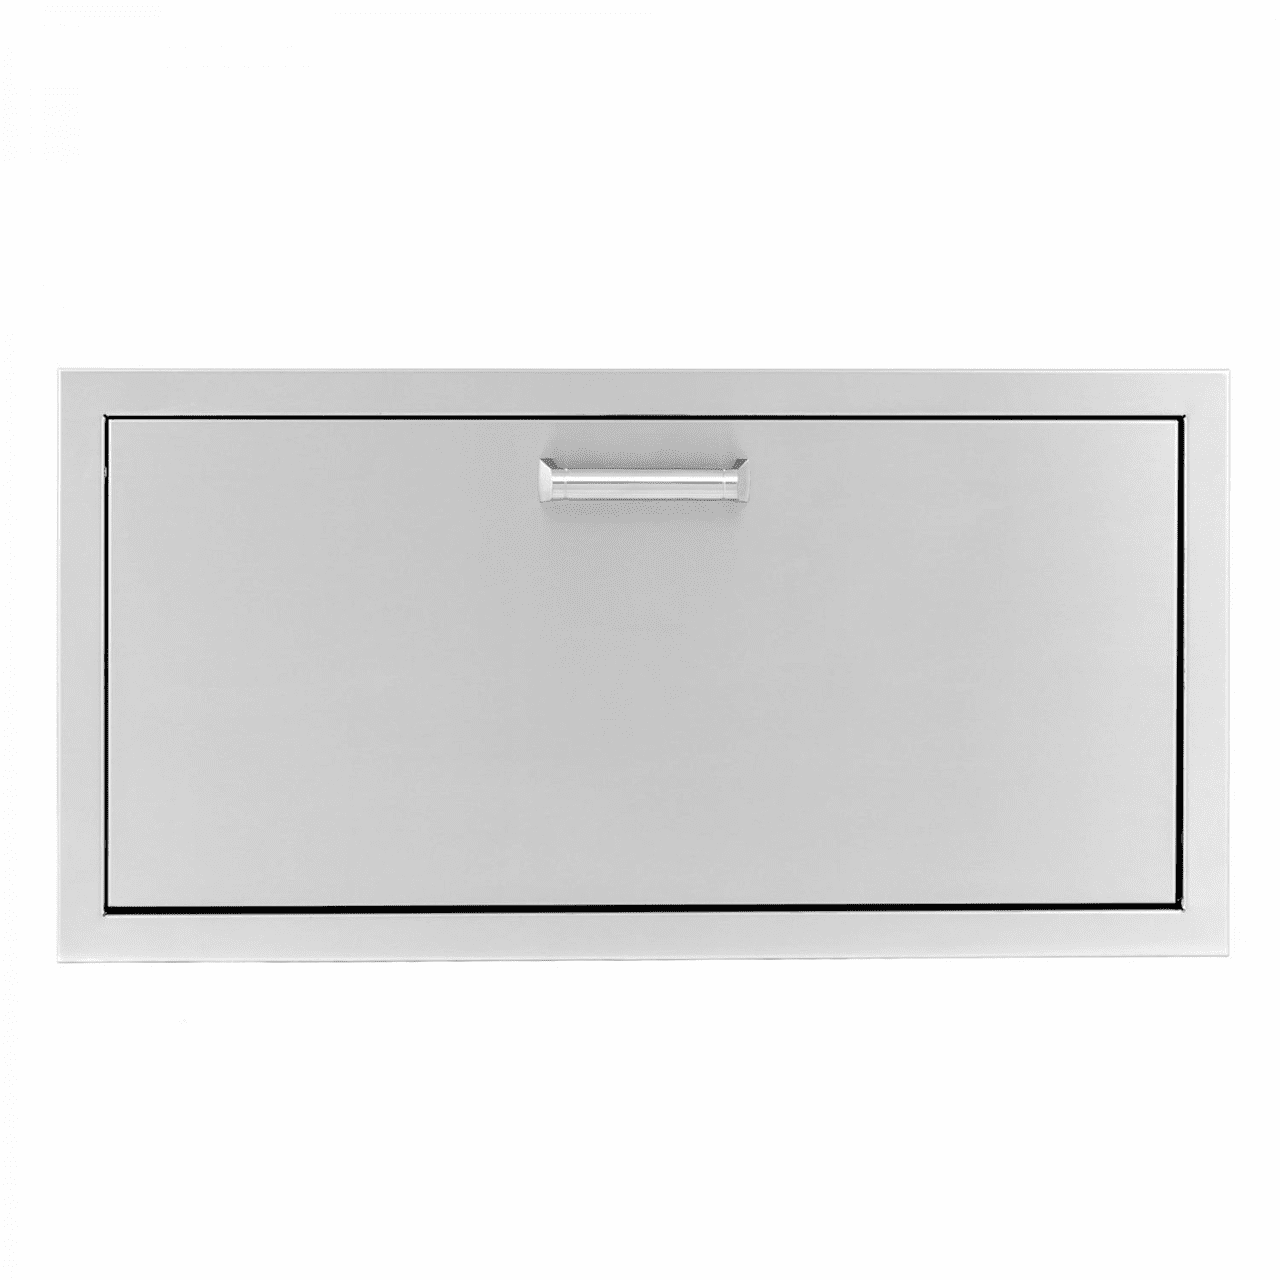 PCM 350H 1 Large Drawer 30 x 115 Stainless 1DR30X15